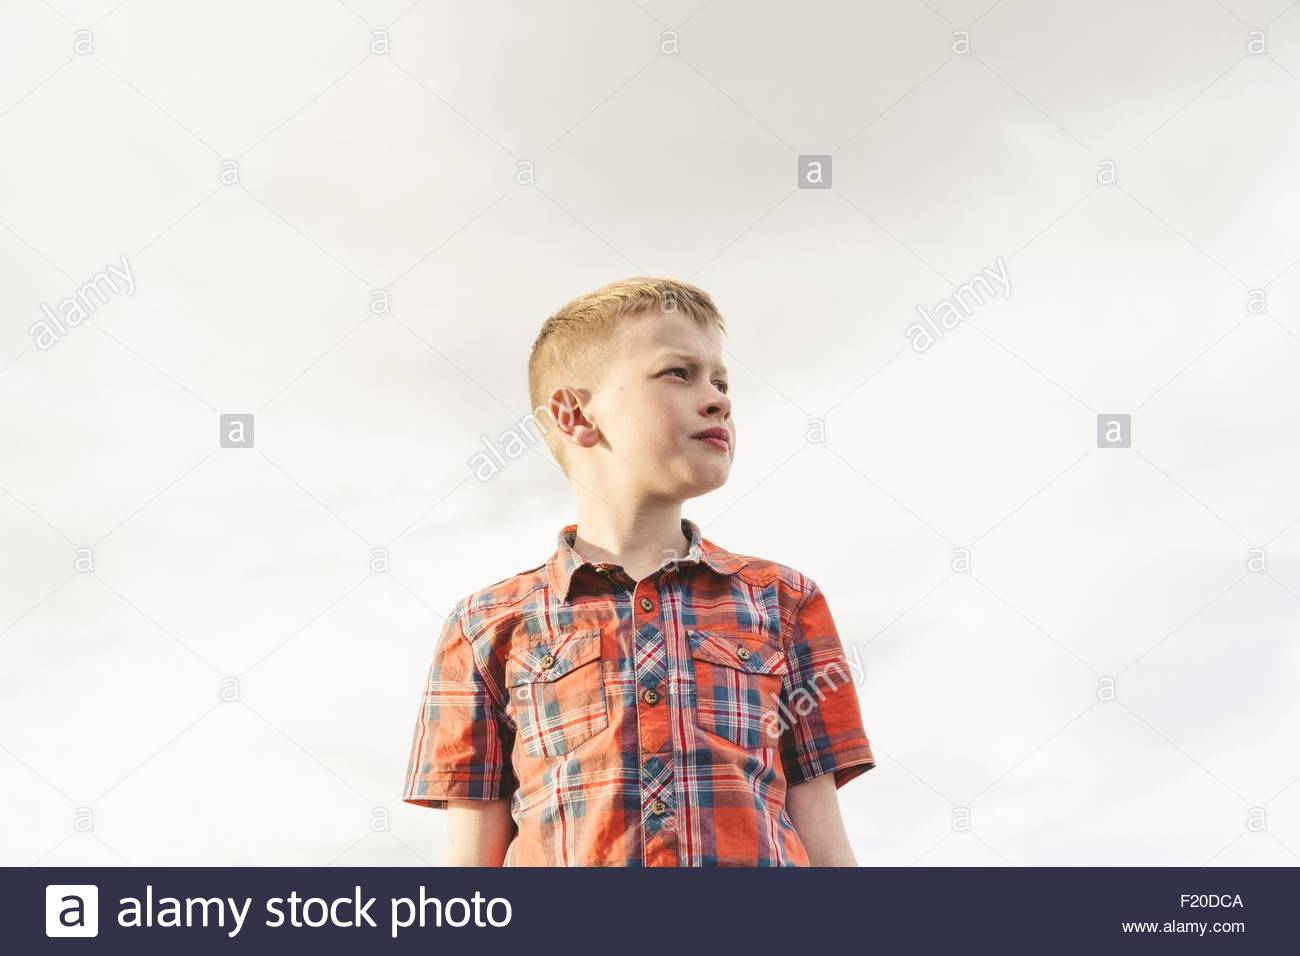 Portrait of boy looking away against overcast sky - Stock Image